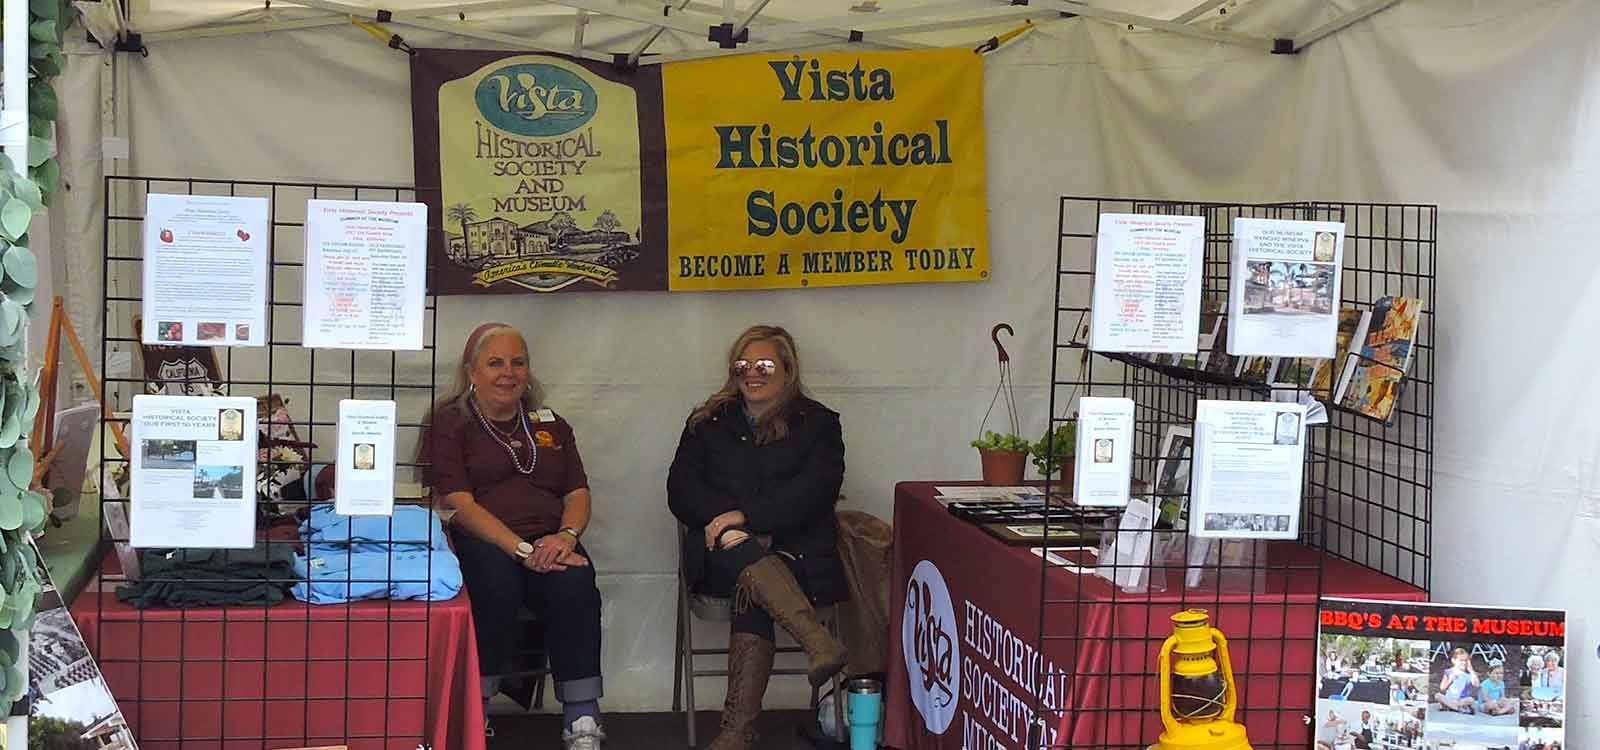 Vista-Historical-Society-